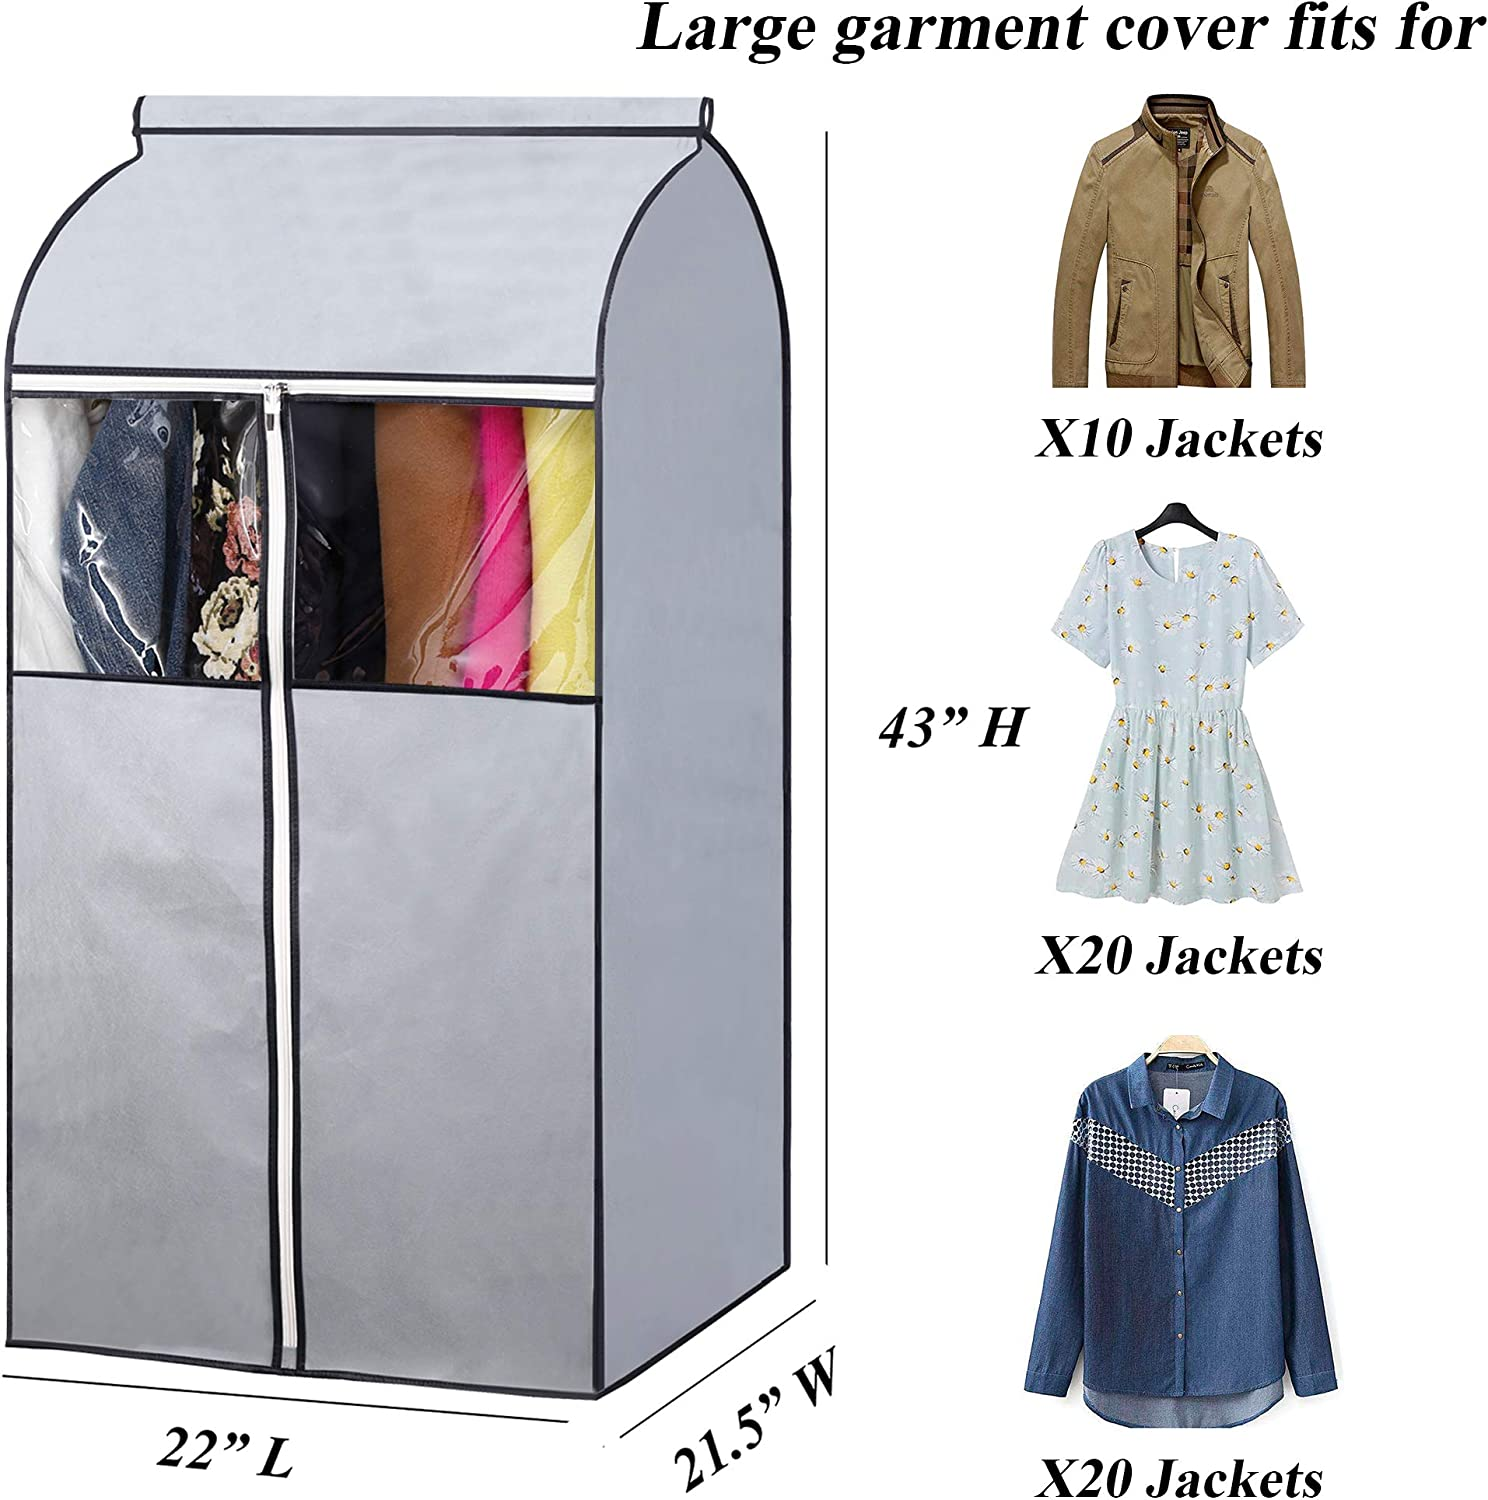 SLEEPING LAMB 43 Garment Bags for Closet Storage with Zippers Completely Closed Wardrobe for Hanging Clothes Suits Coats Cover 2 Packs Grey